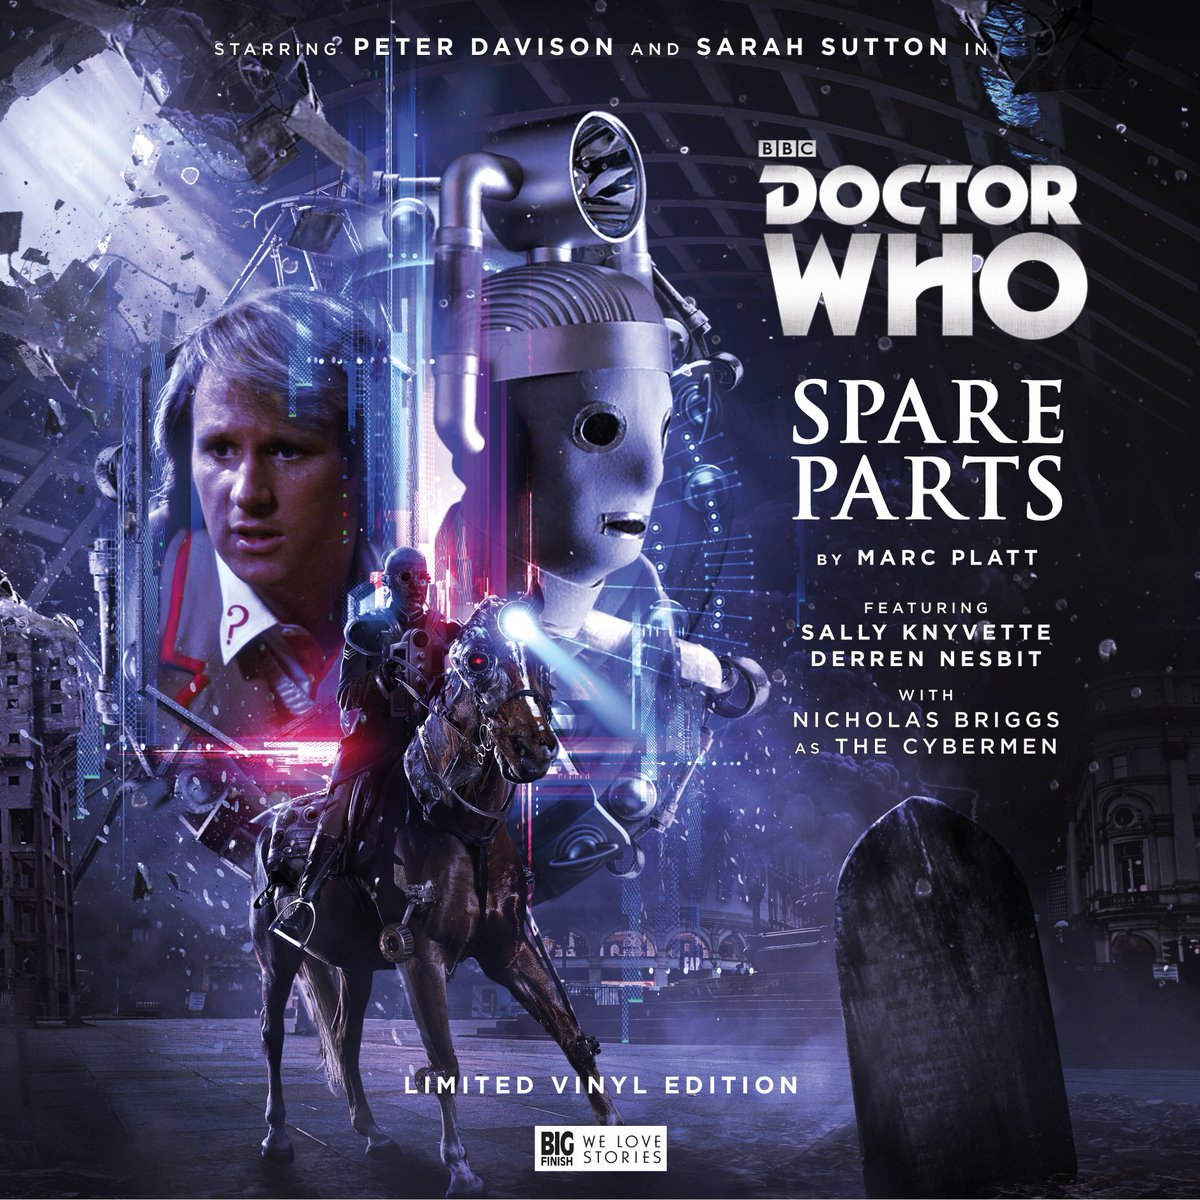 The Continuing Adventures of the Mondasian Cybermen